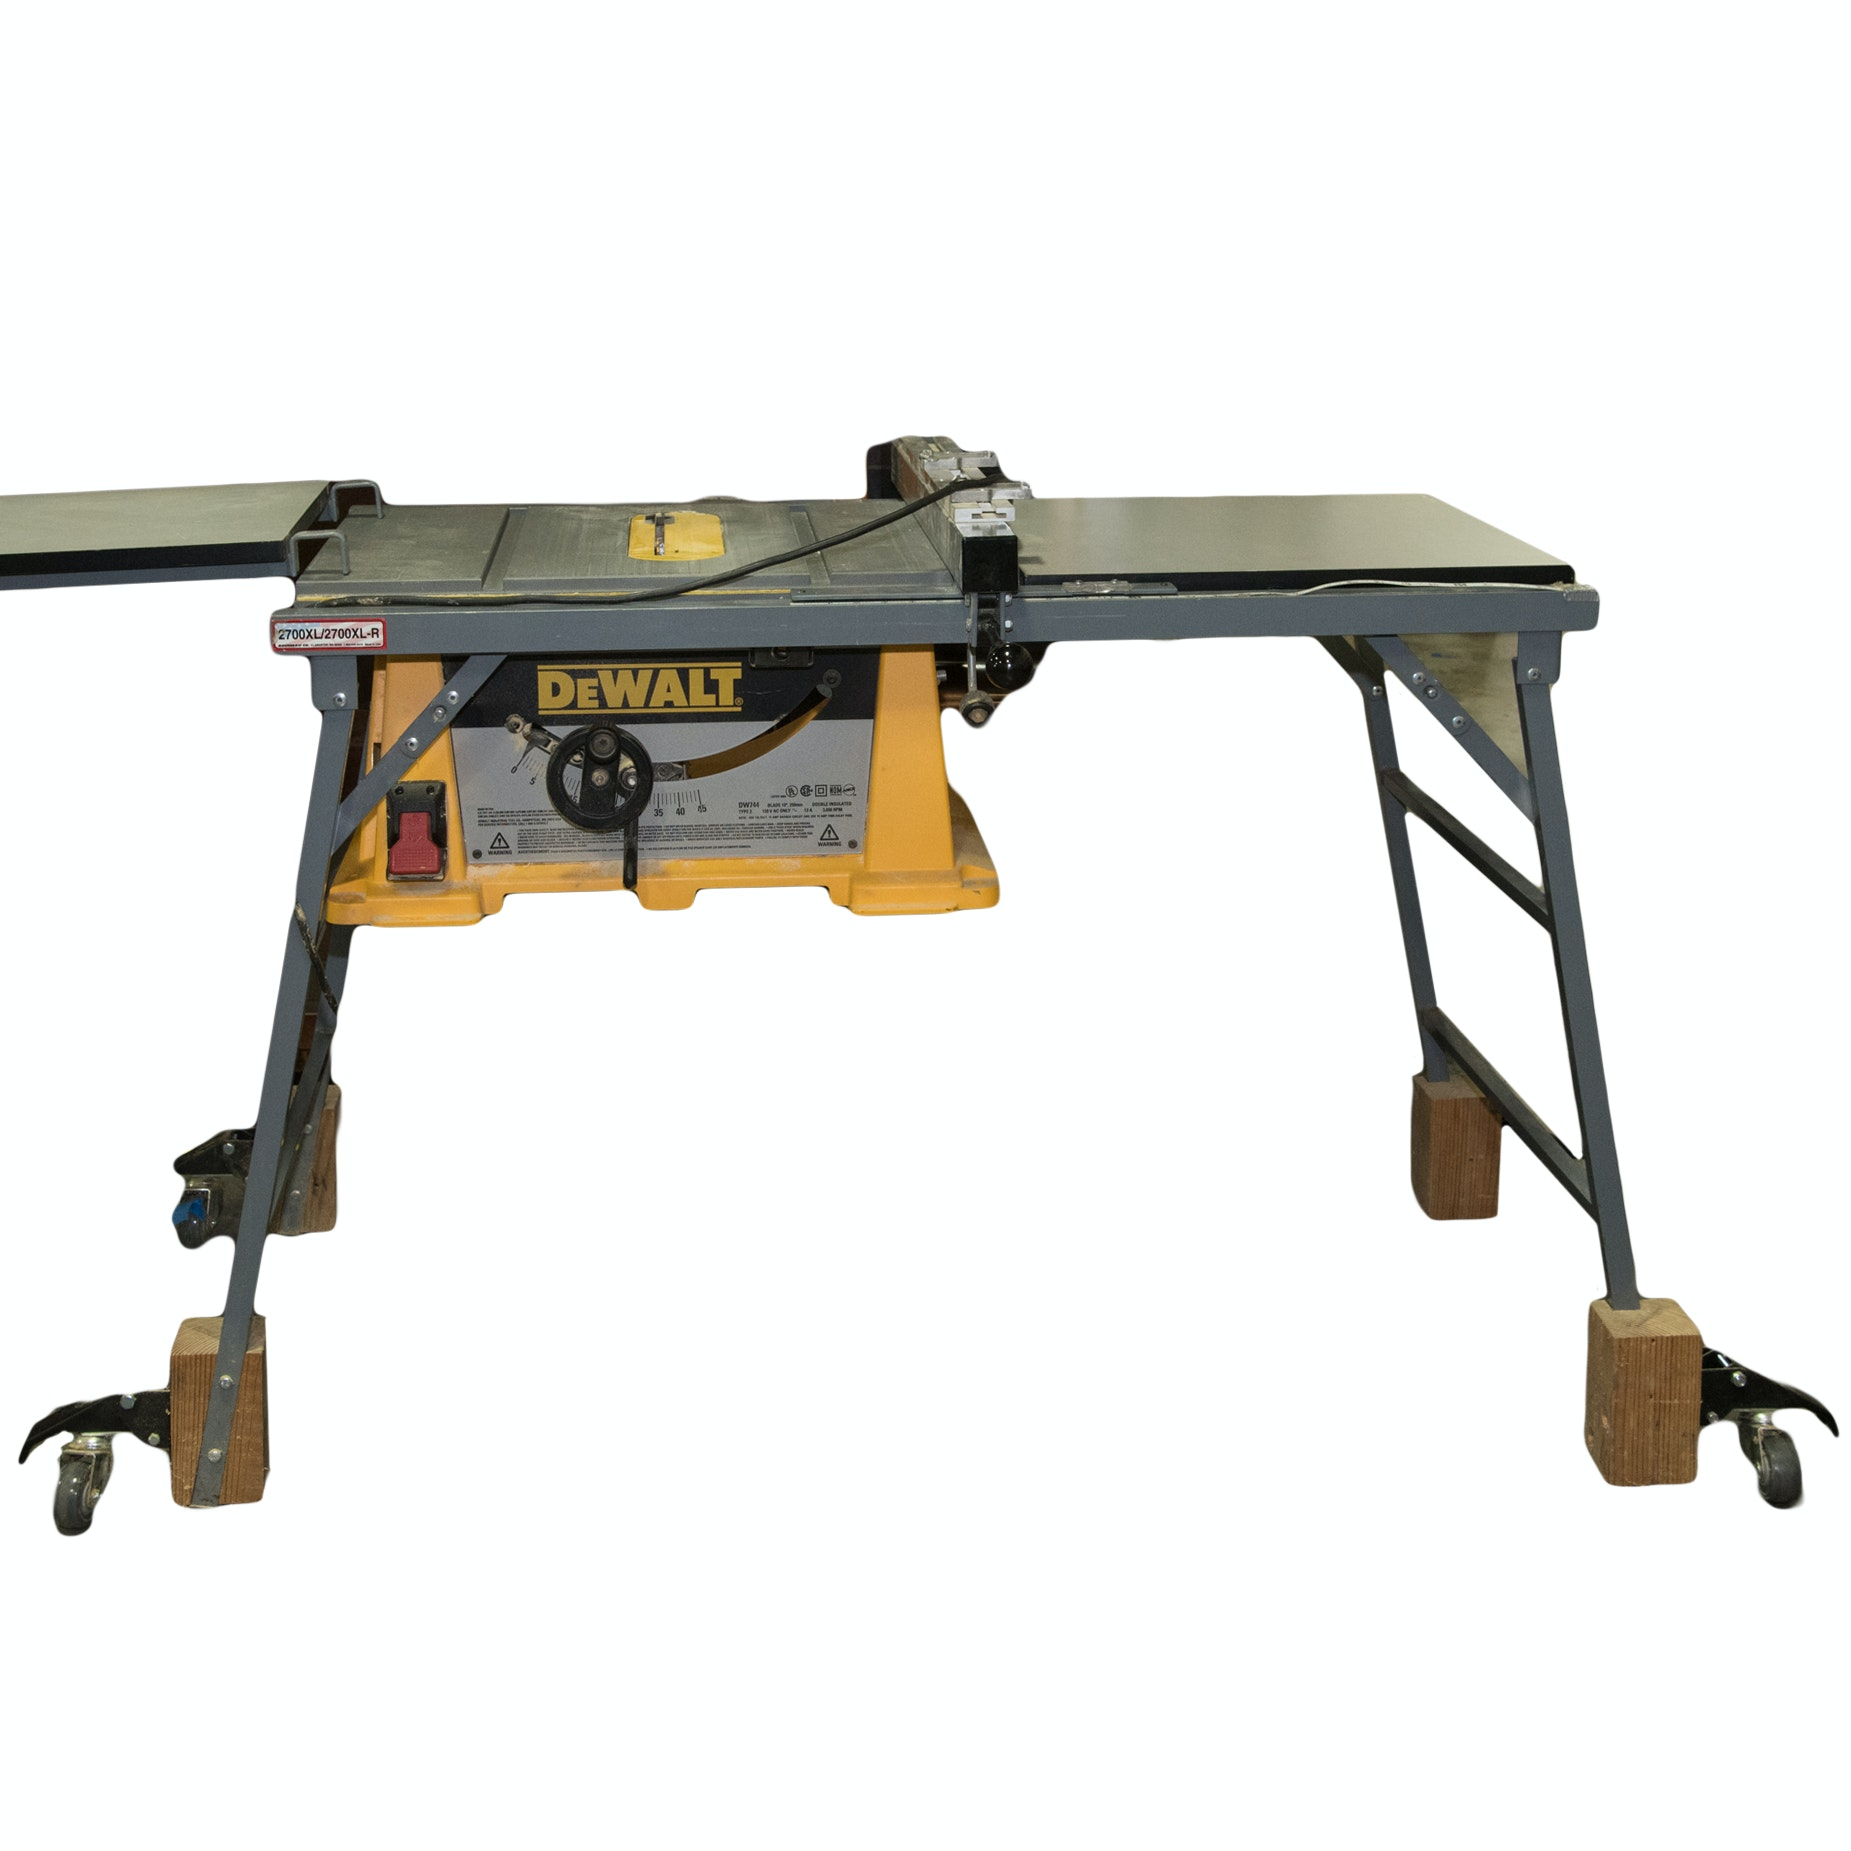 DeWalt Saw and Router Table